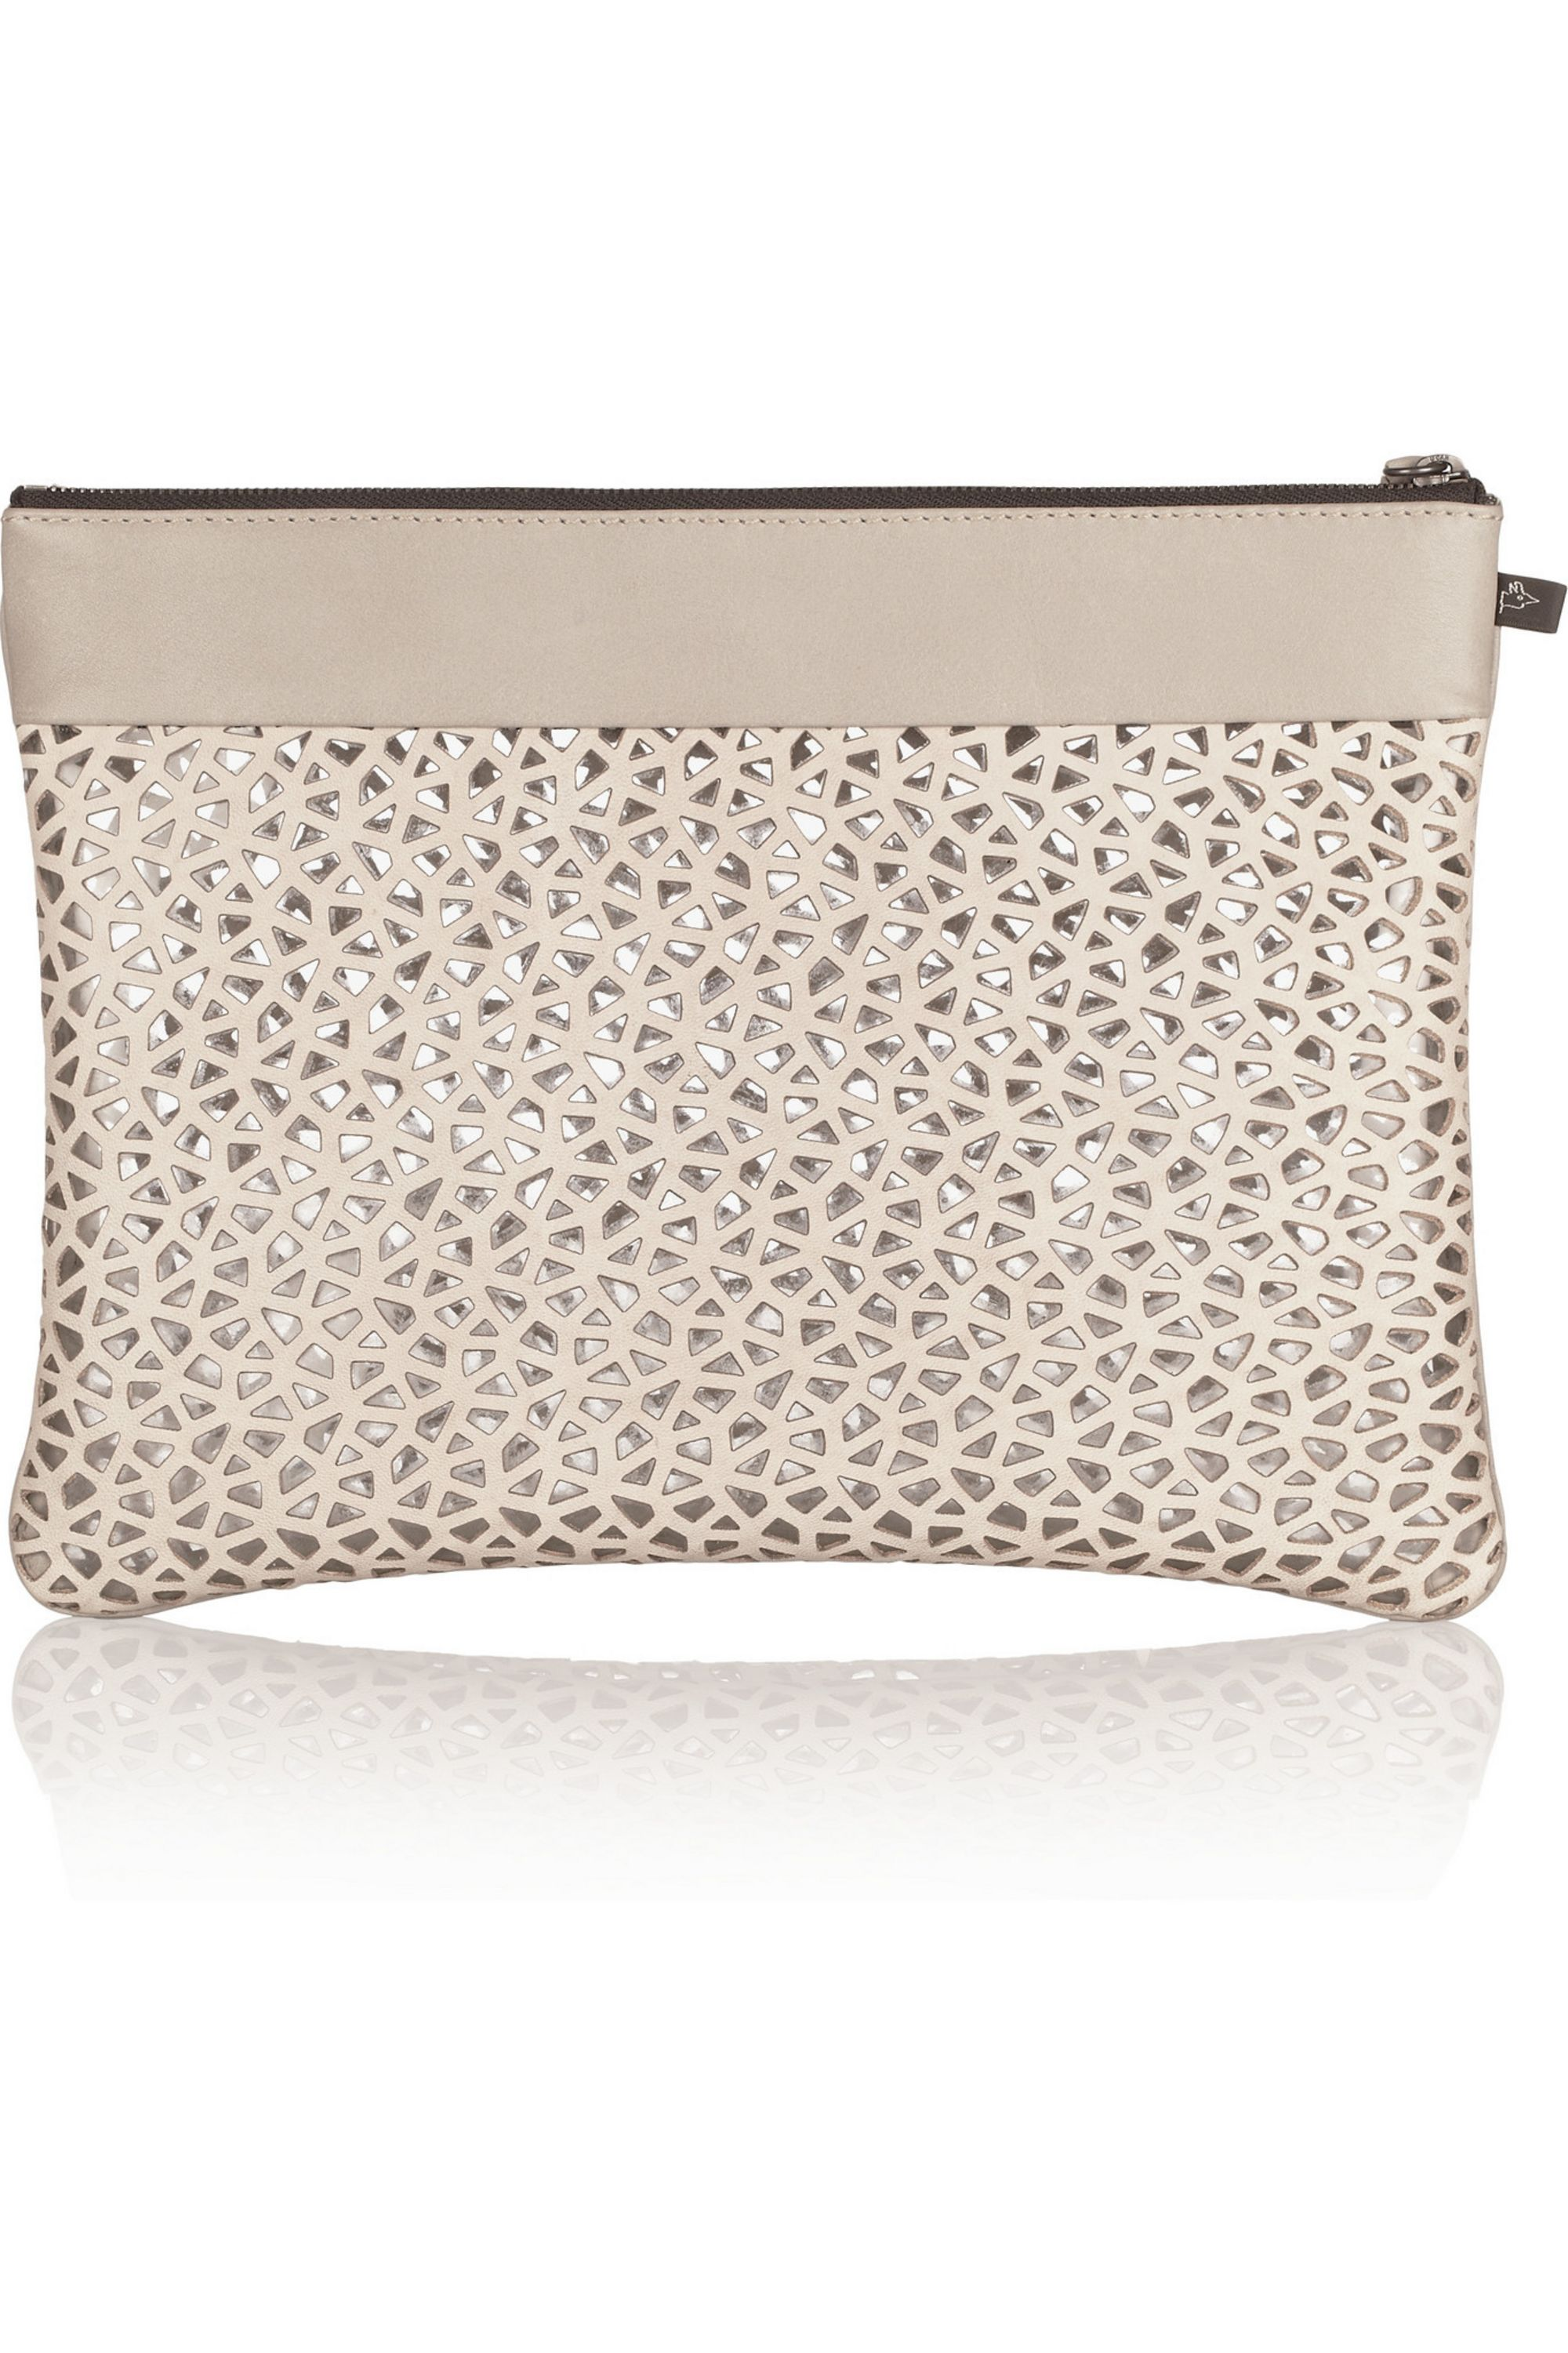 NewbarK Laser-cut leather clutch